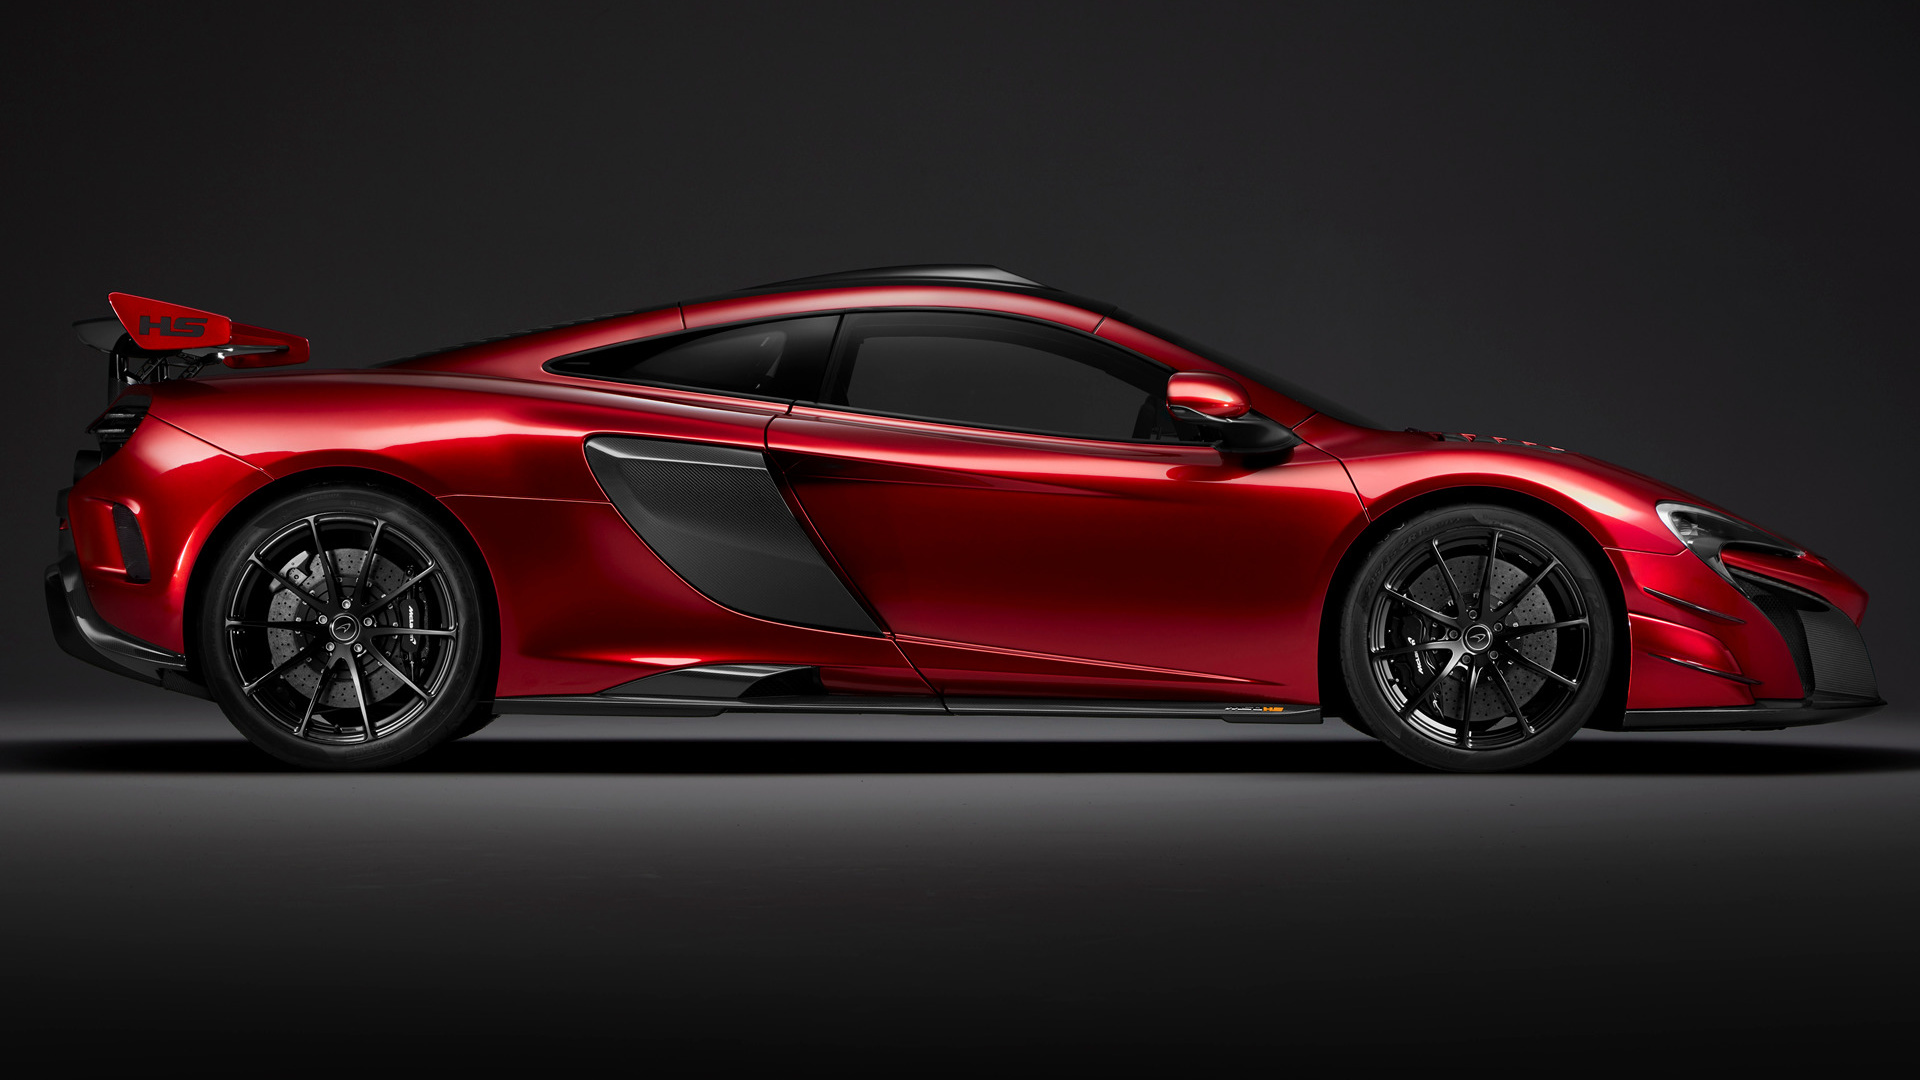 McLaren MSO HS (2016) Wallpapers and HD Images - Car Pixel